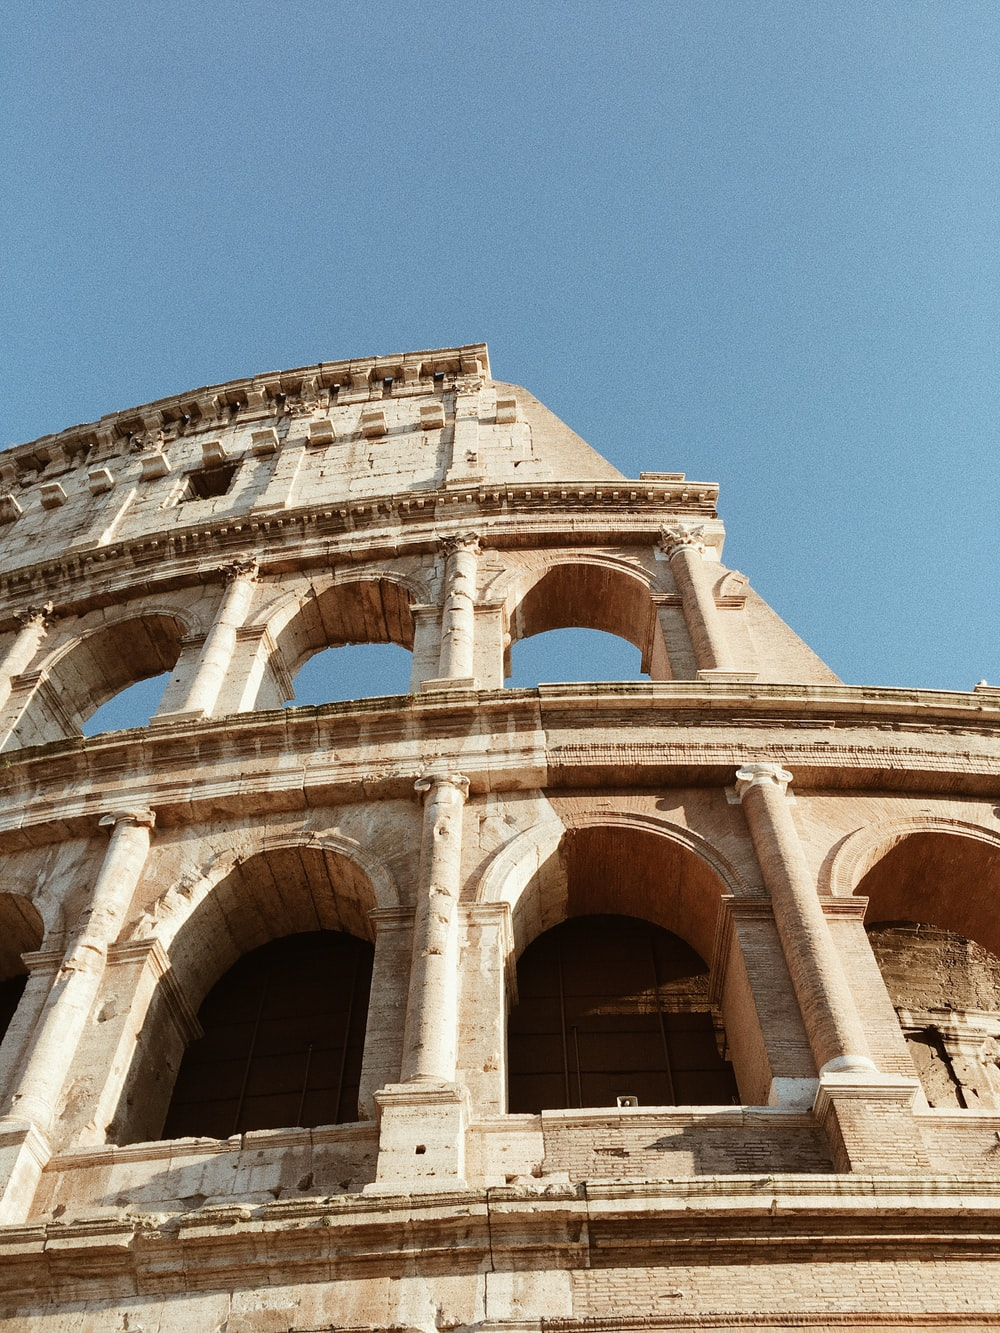 low angle view of Colosseum at Rome Italy